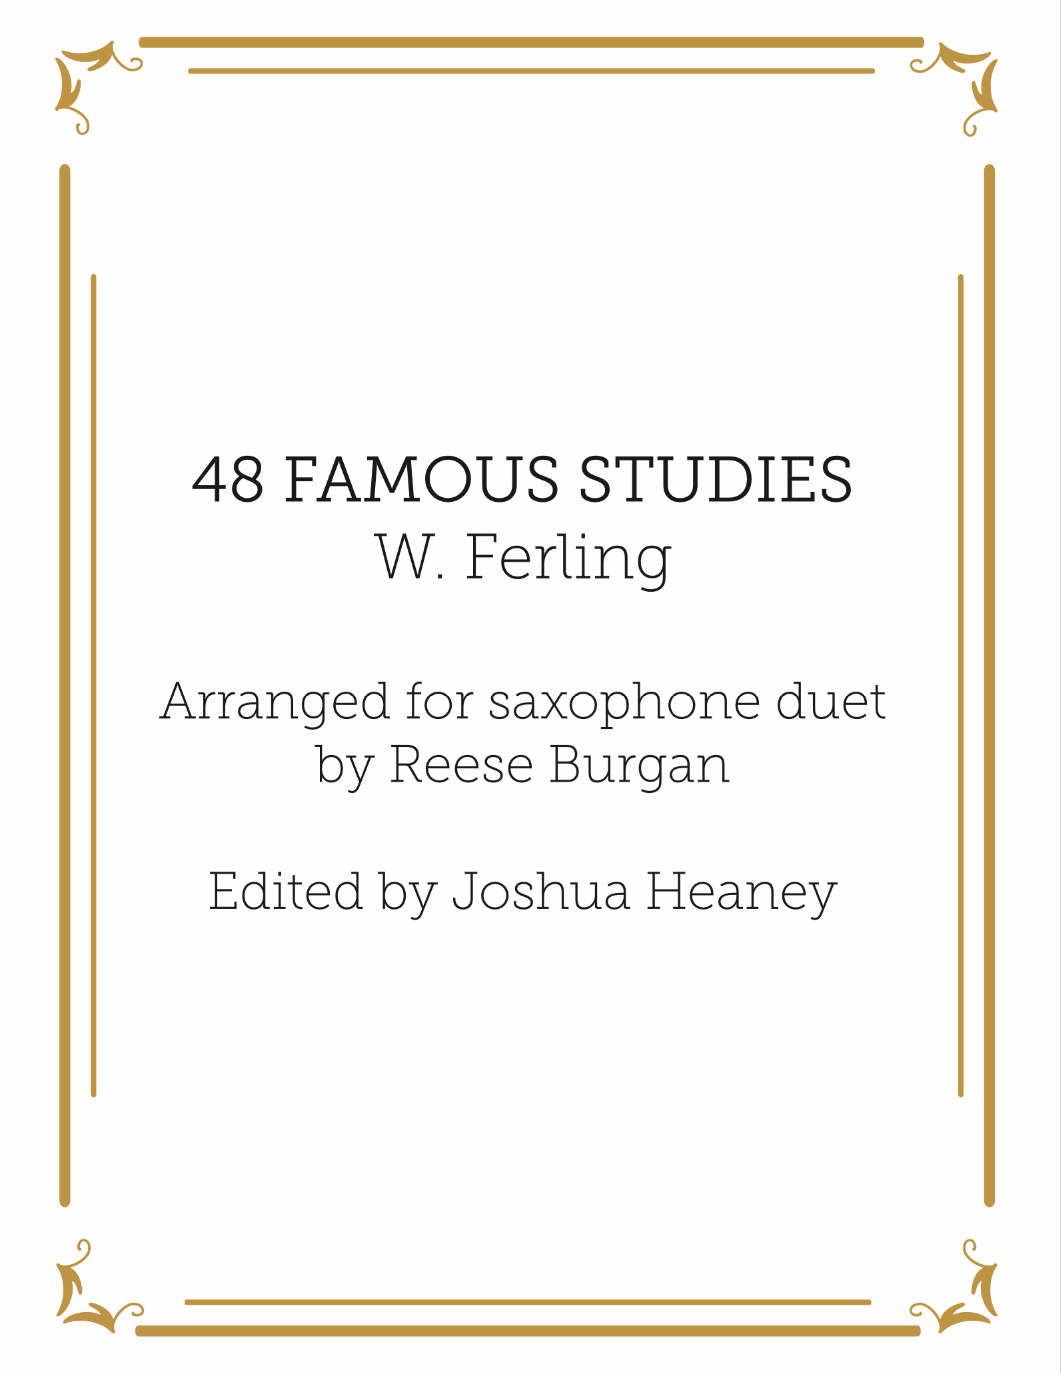 48 Famous Studies For Saxophone Duet by Ferling arr. Burgan